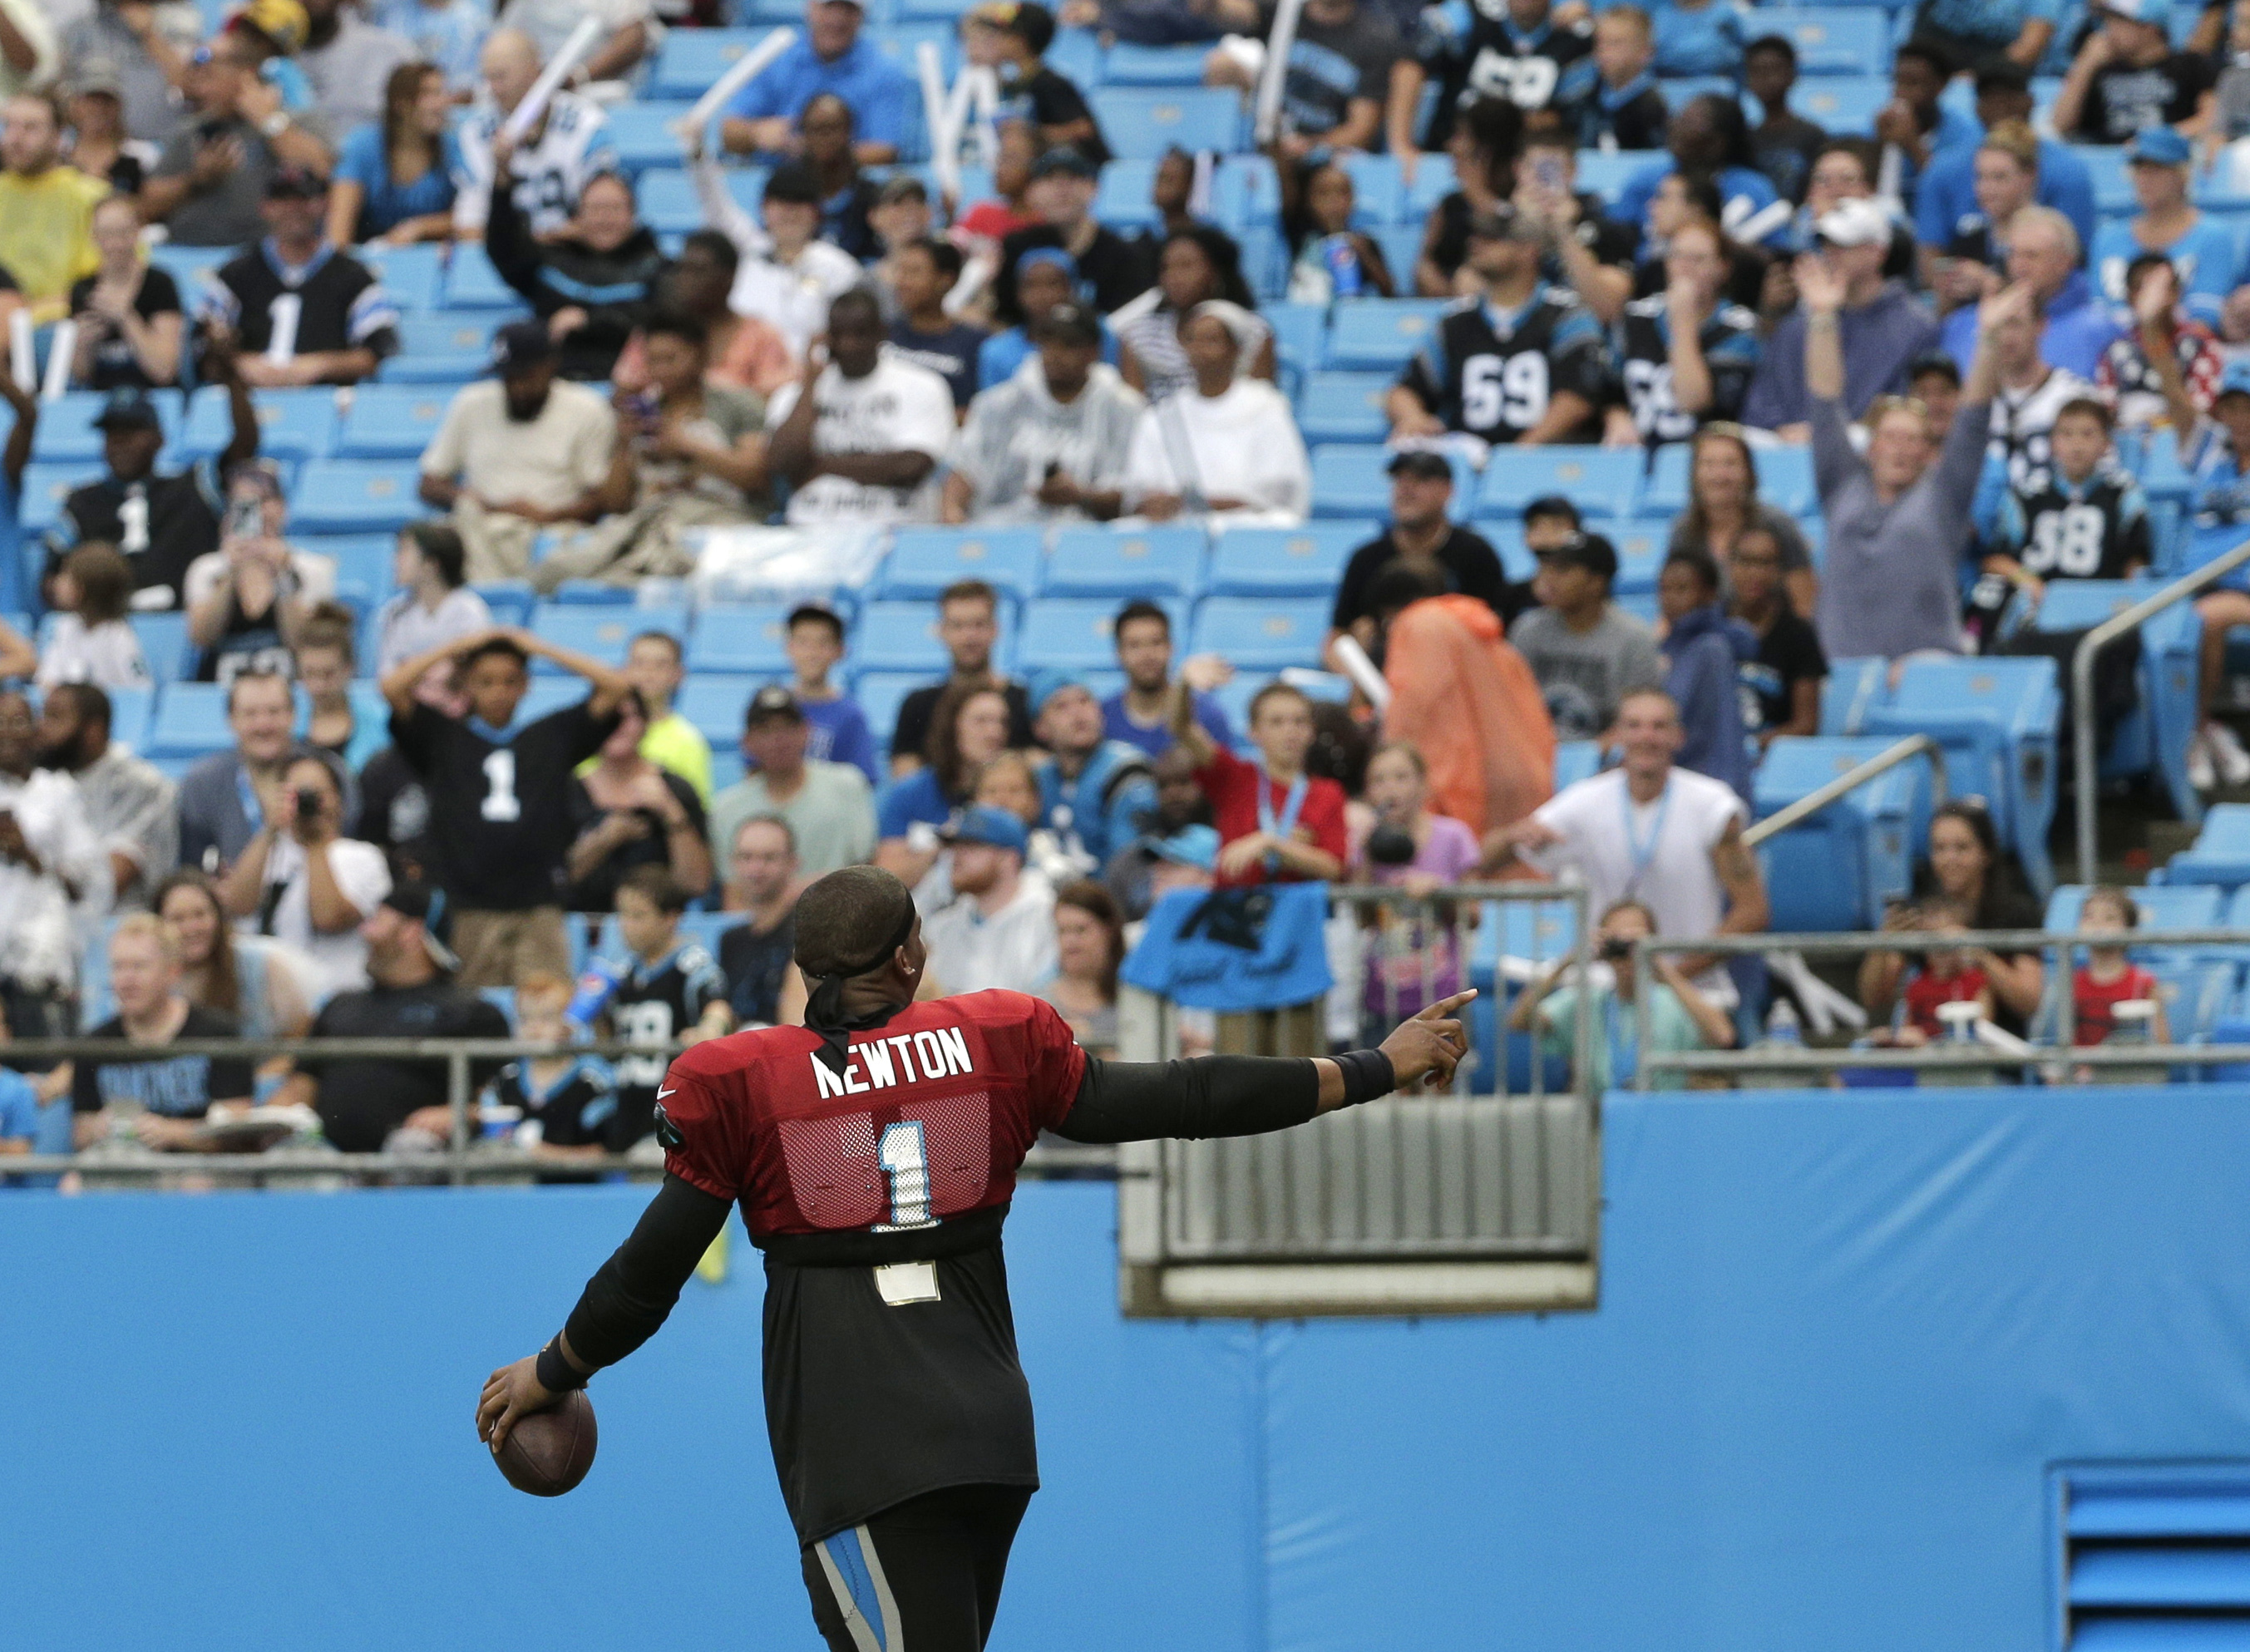 Carolina Panthers' Cam Newton points to the crowd at the team's annual Fan Fest practice during NFL training camp in Charlotte, N.C., Friday, Aug. 5, 2016. (AP Photo/Chuck Burton)